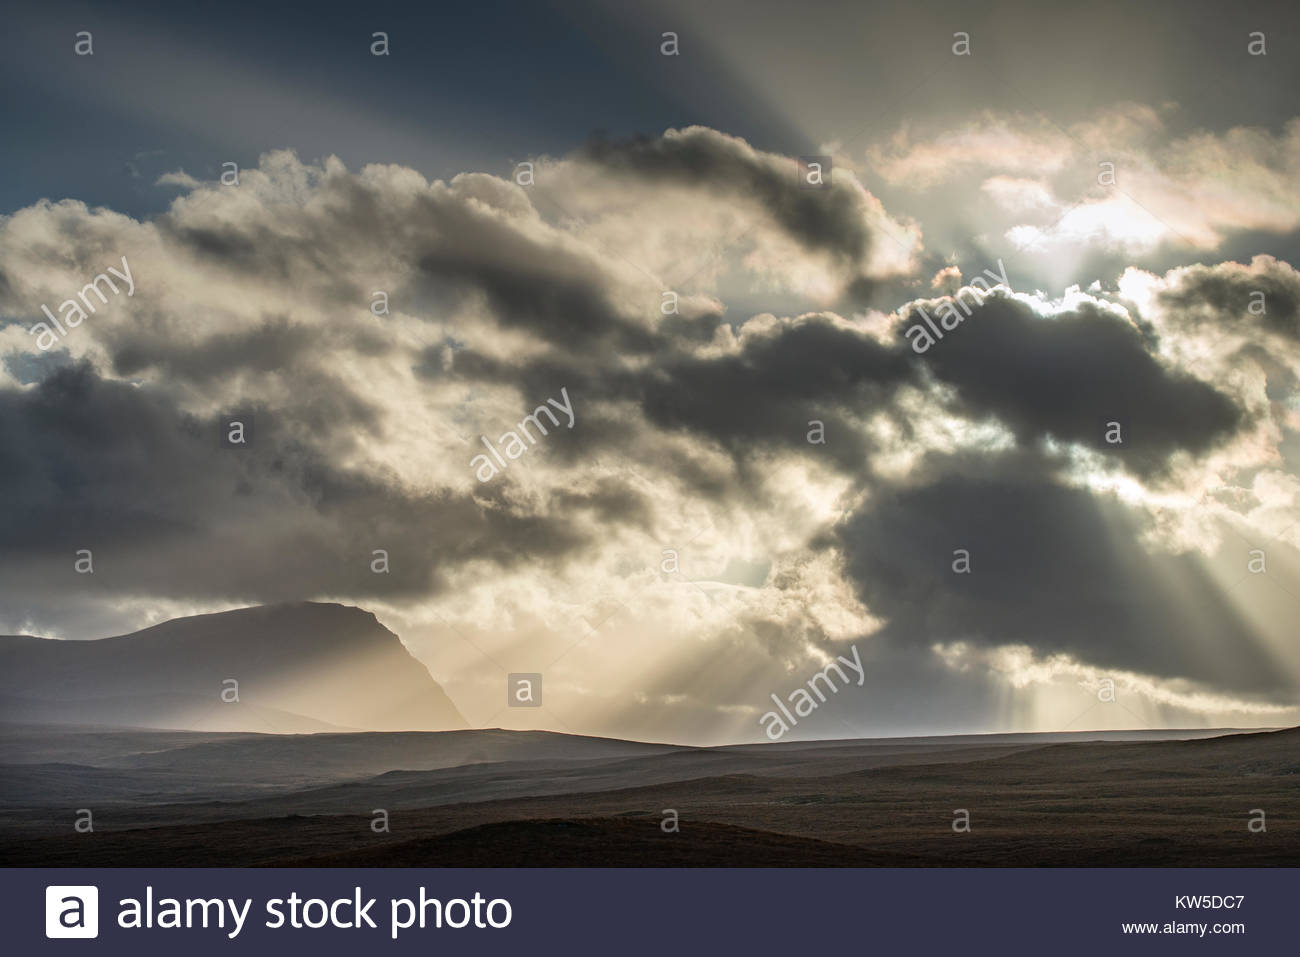 Clouds over the north highlands of Scotland. - Stock Image